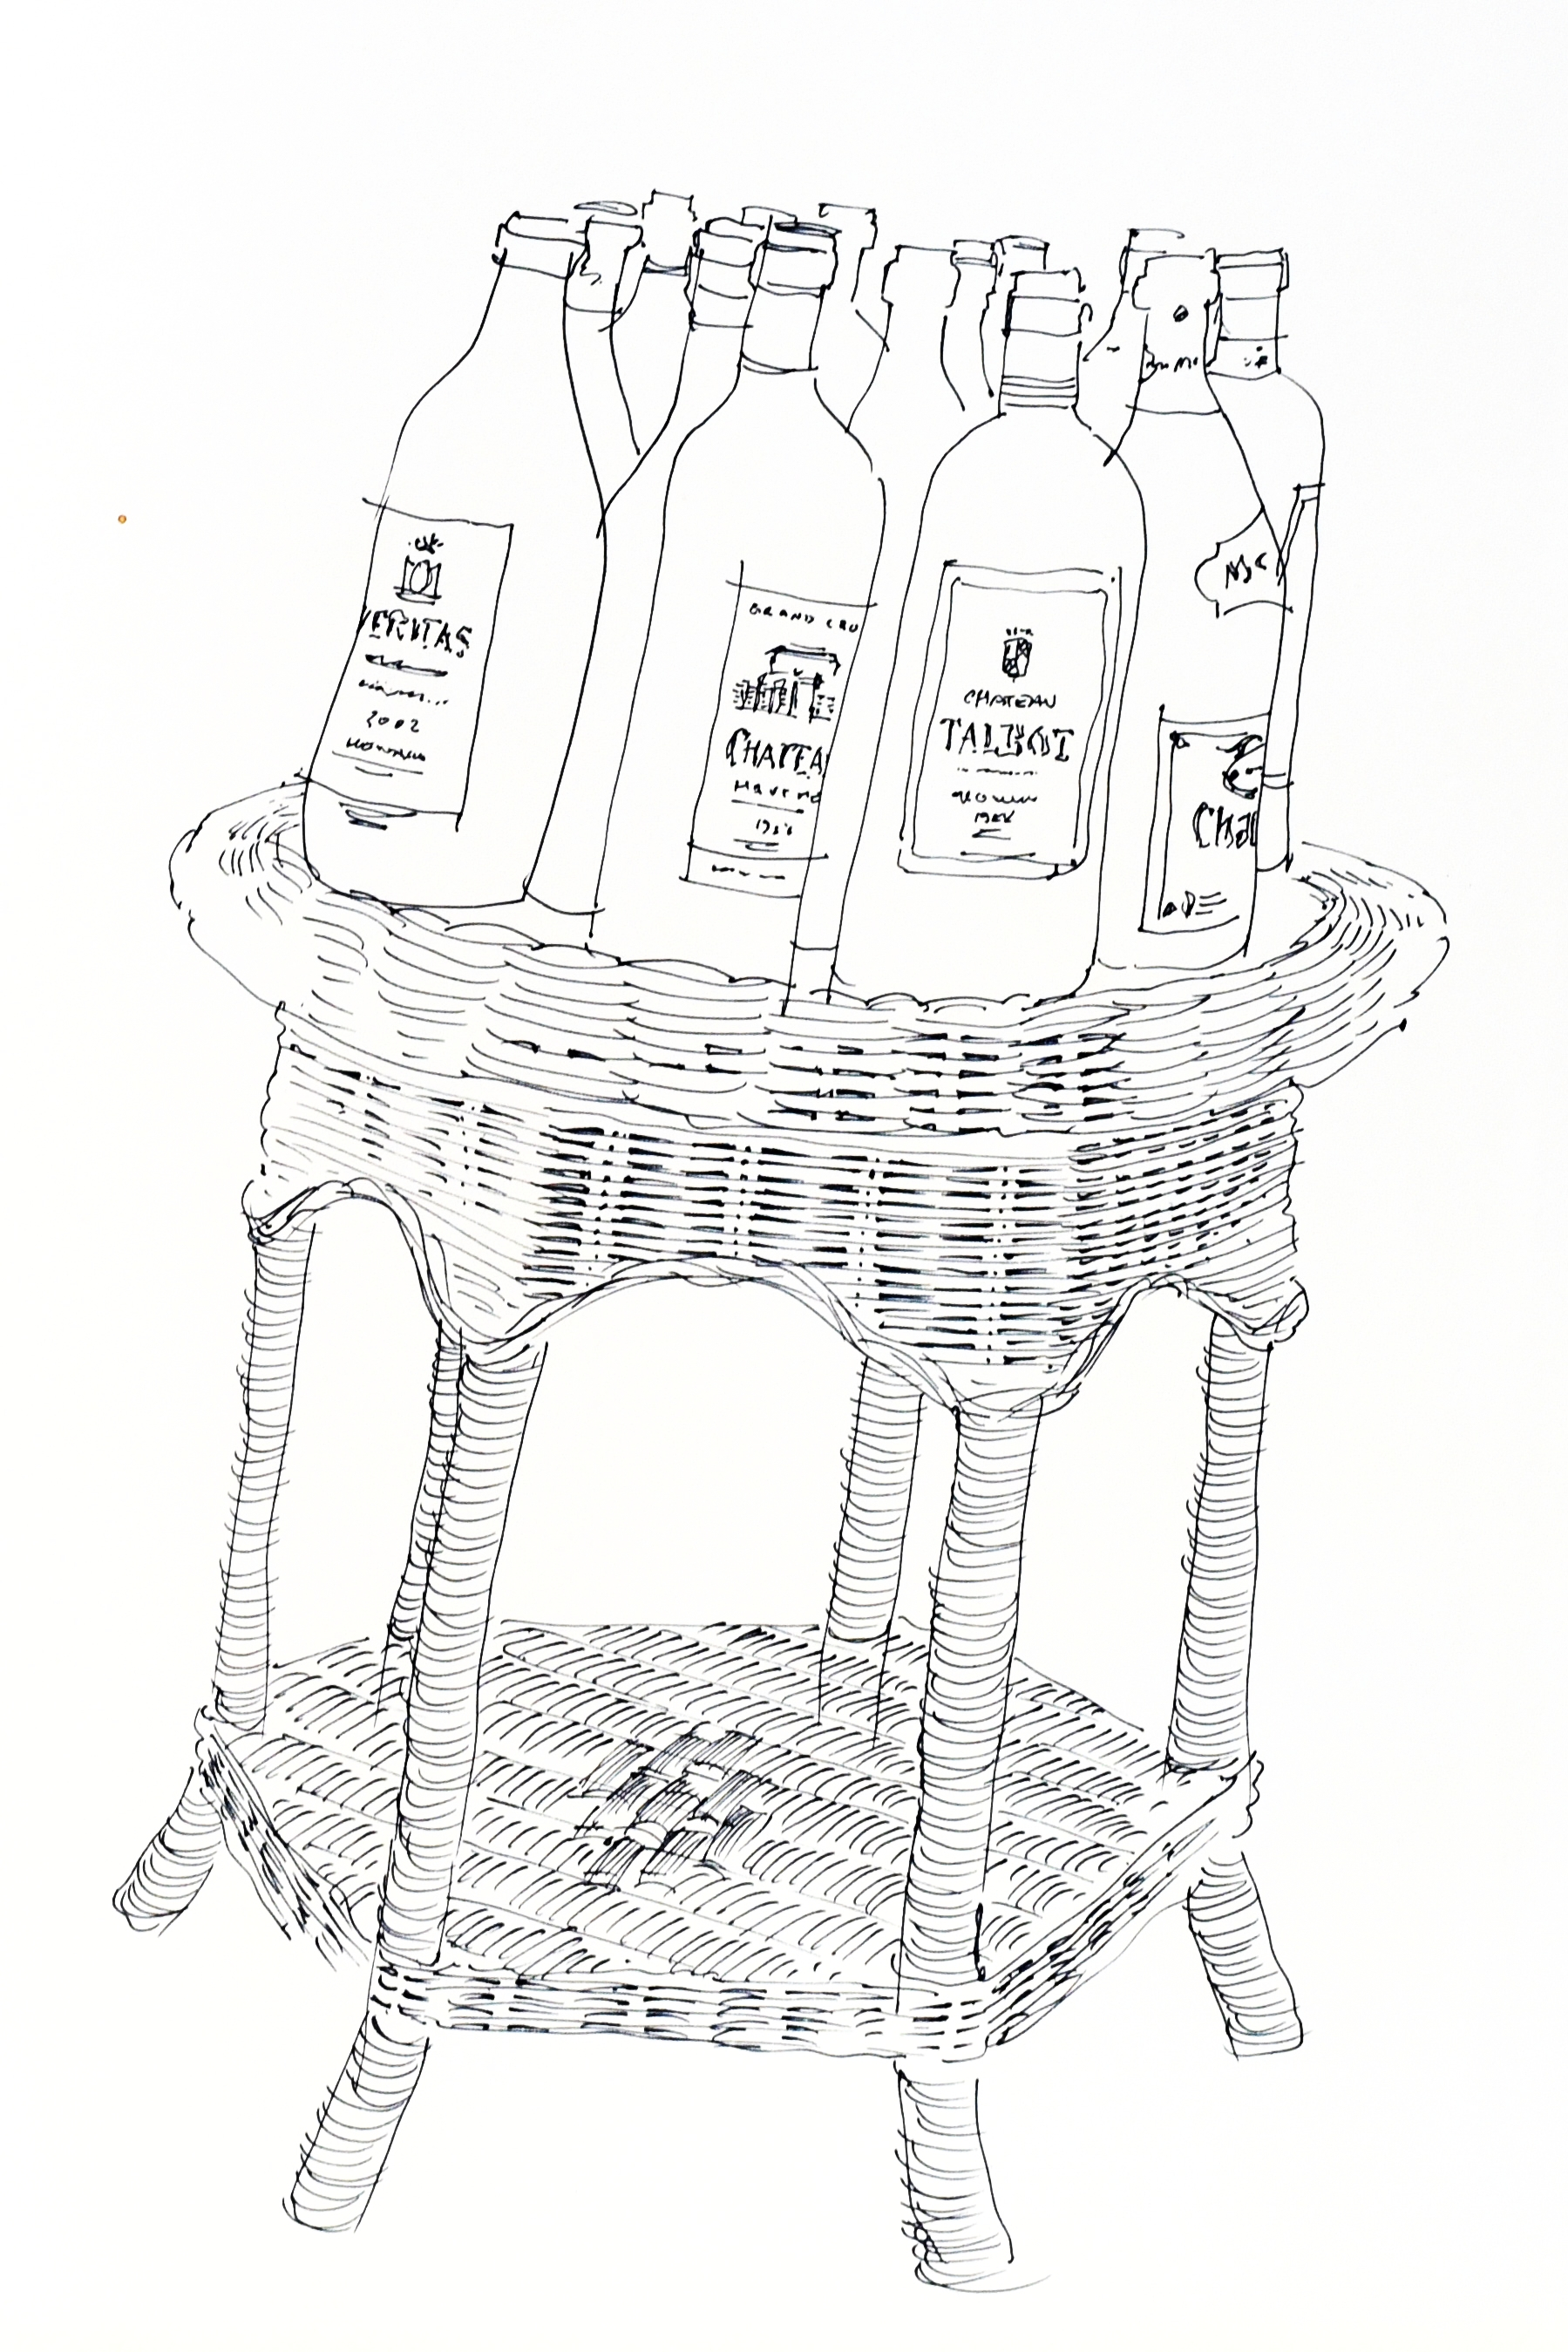 Line drawing of bottles of alcohol on a table